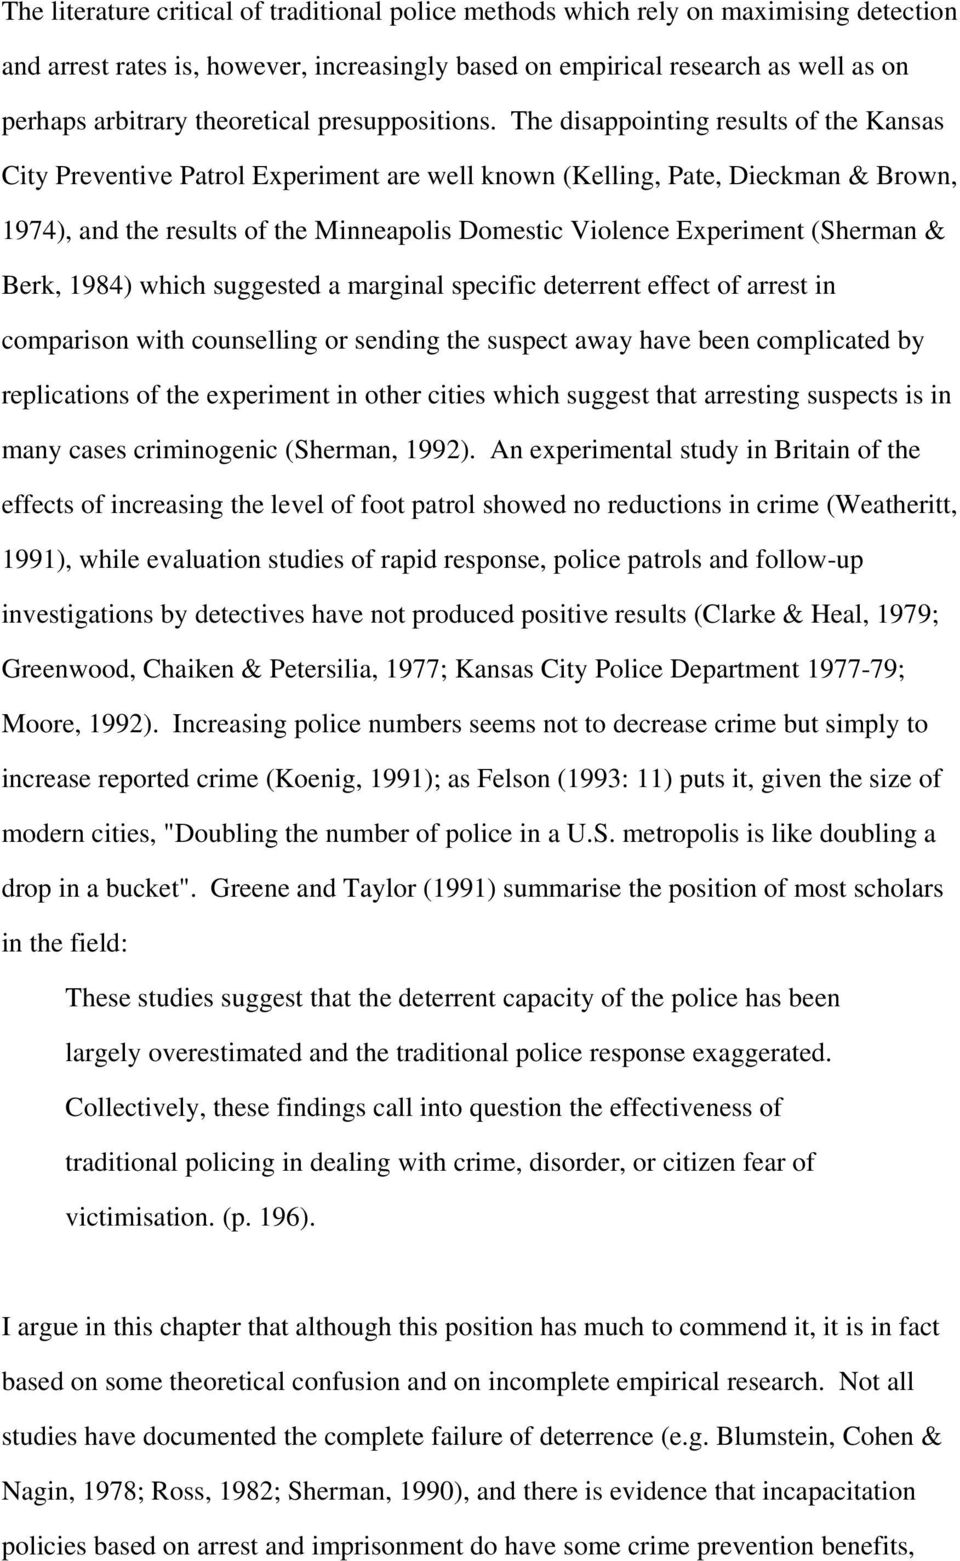 The disappointing results of the Kansas City Preventive Patrol Experiment are well known (Kelling, Pate, Dieckman & Brown, 1974), and the results of the Minneapolis Domestic Violence Experiment